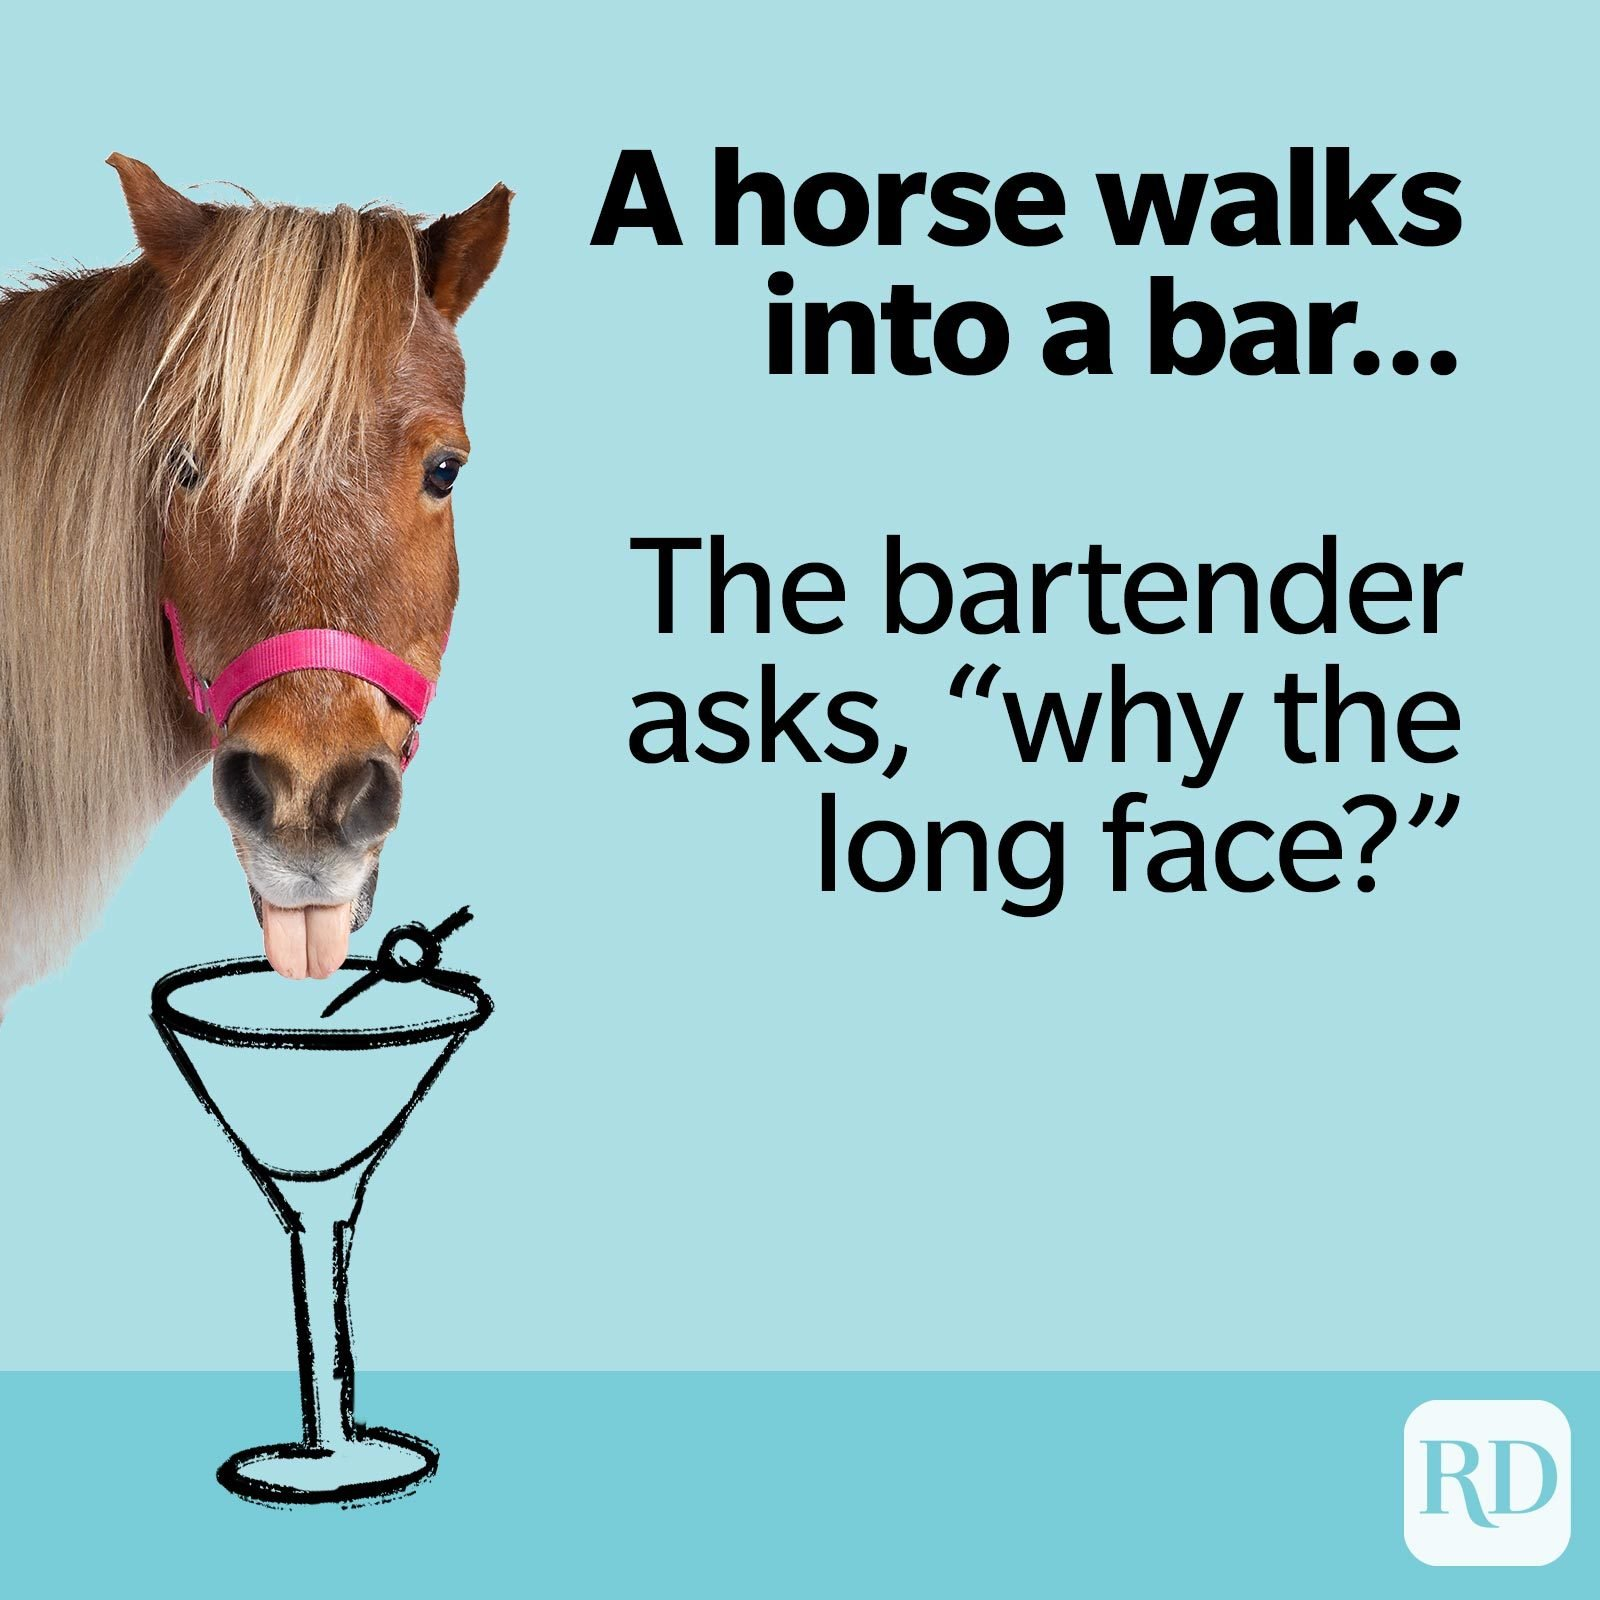 """8. Another horse walks into a bar… The bartender asks, """"why the long face?"""""""